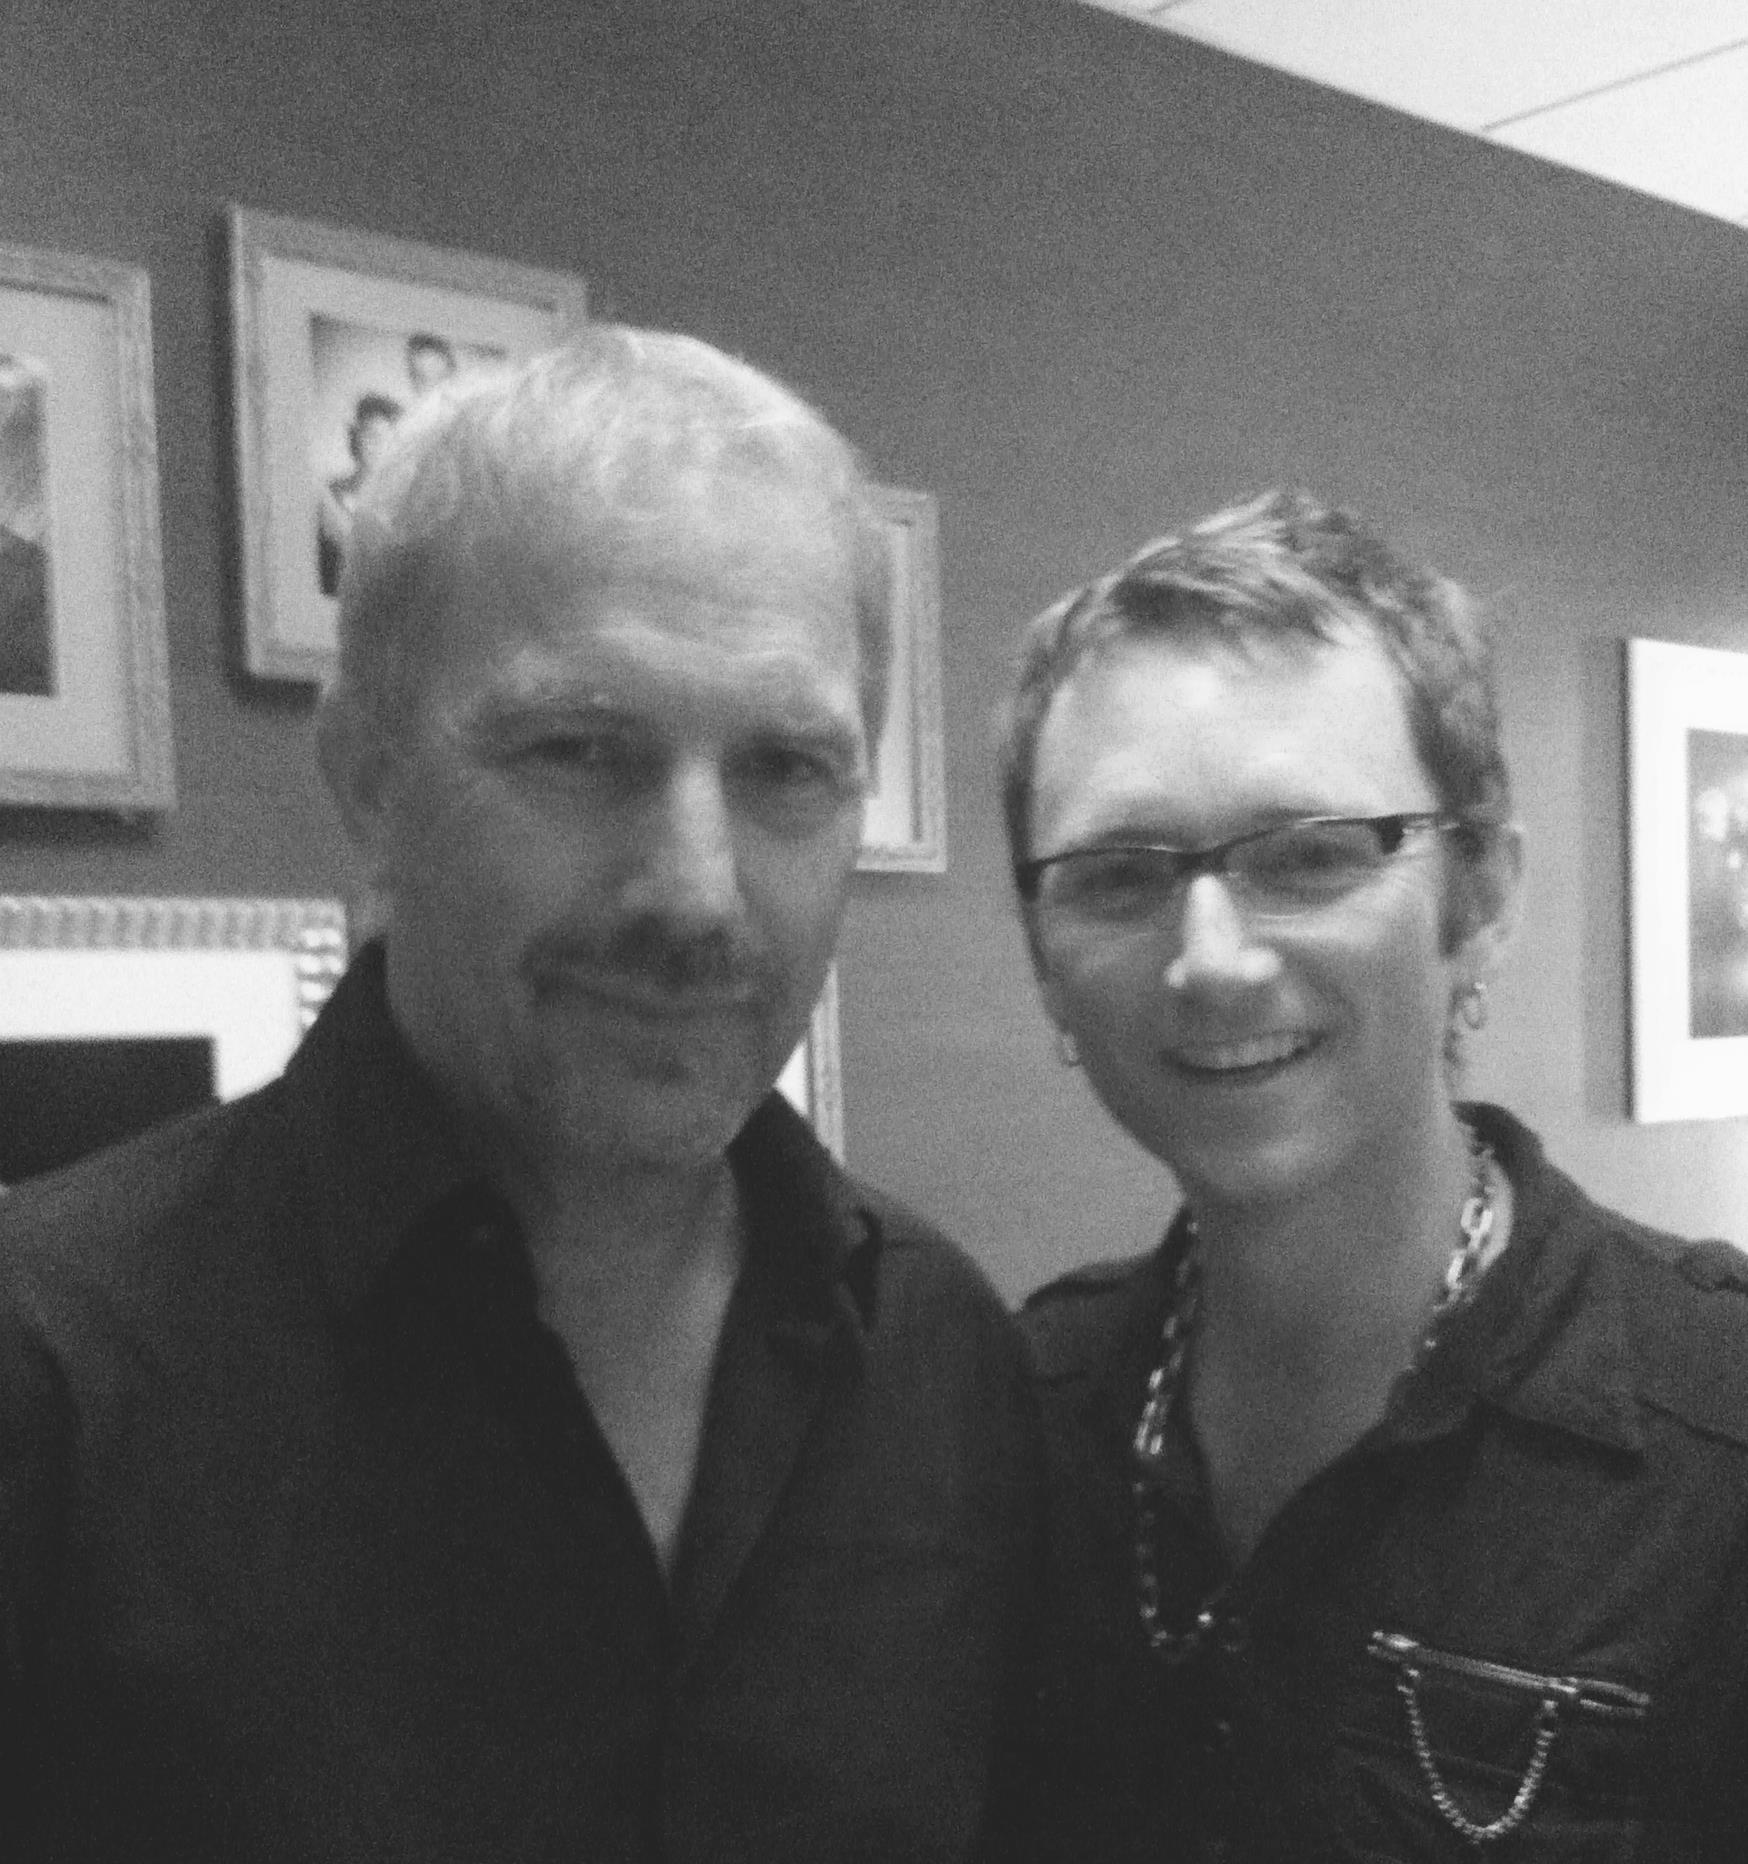 Kevin Costner and Jay Riehl